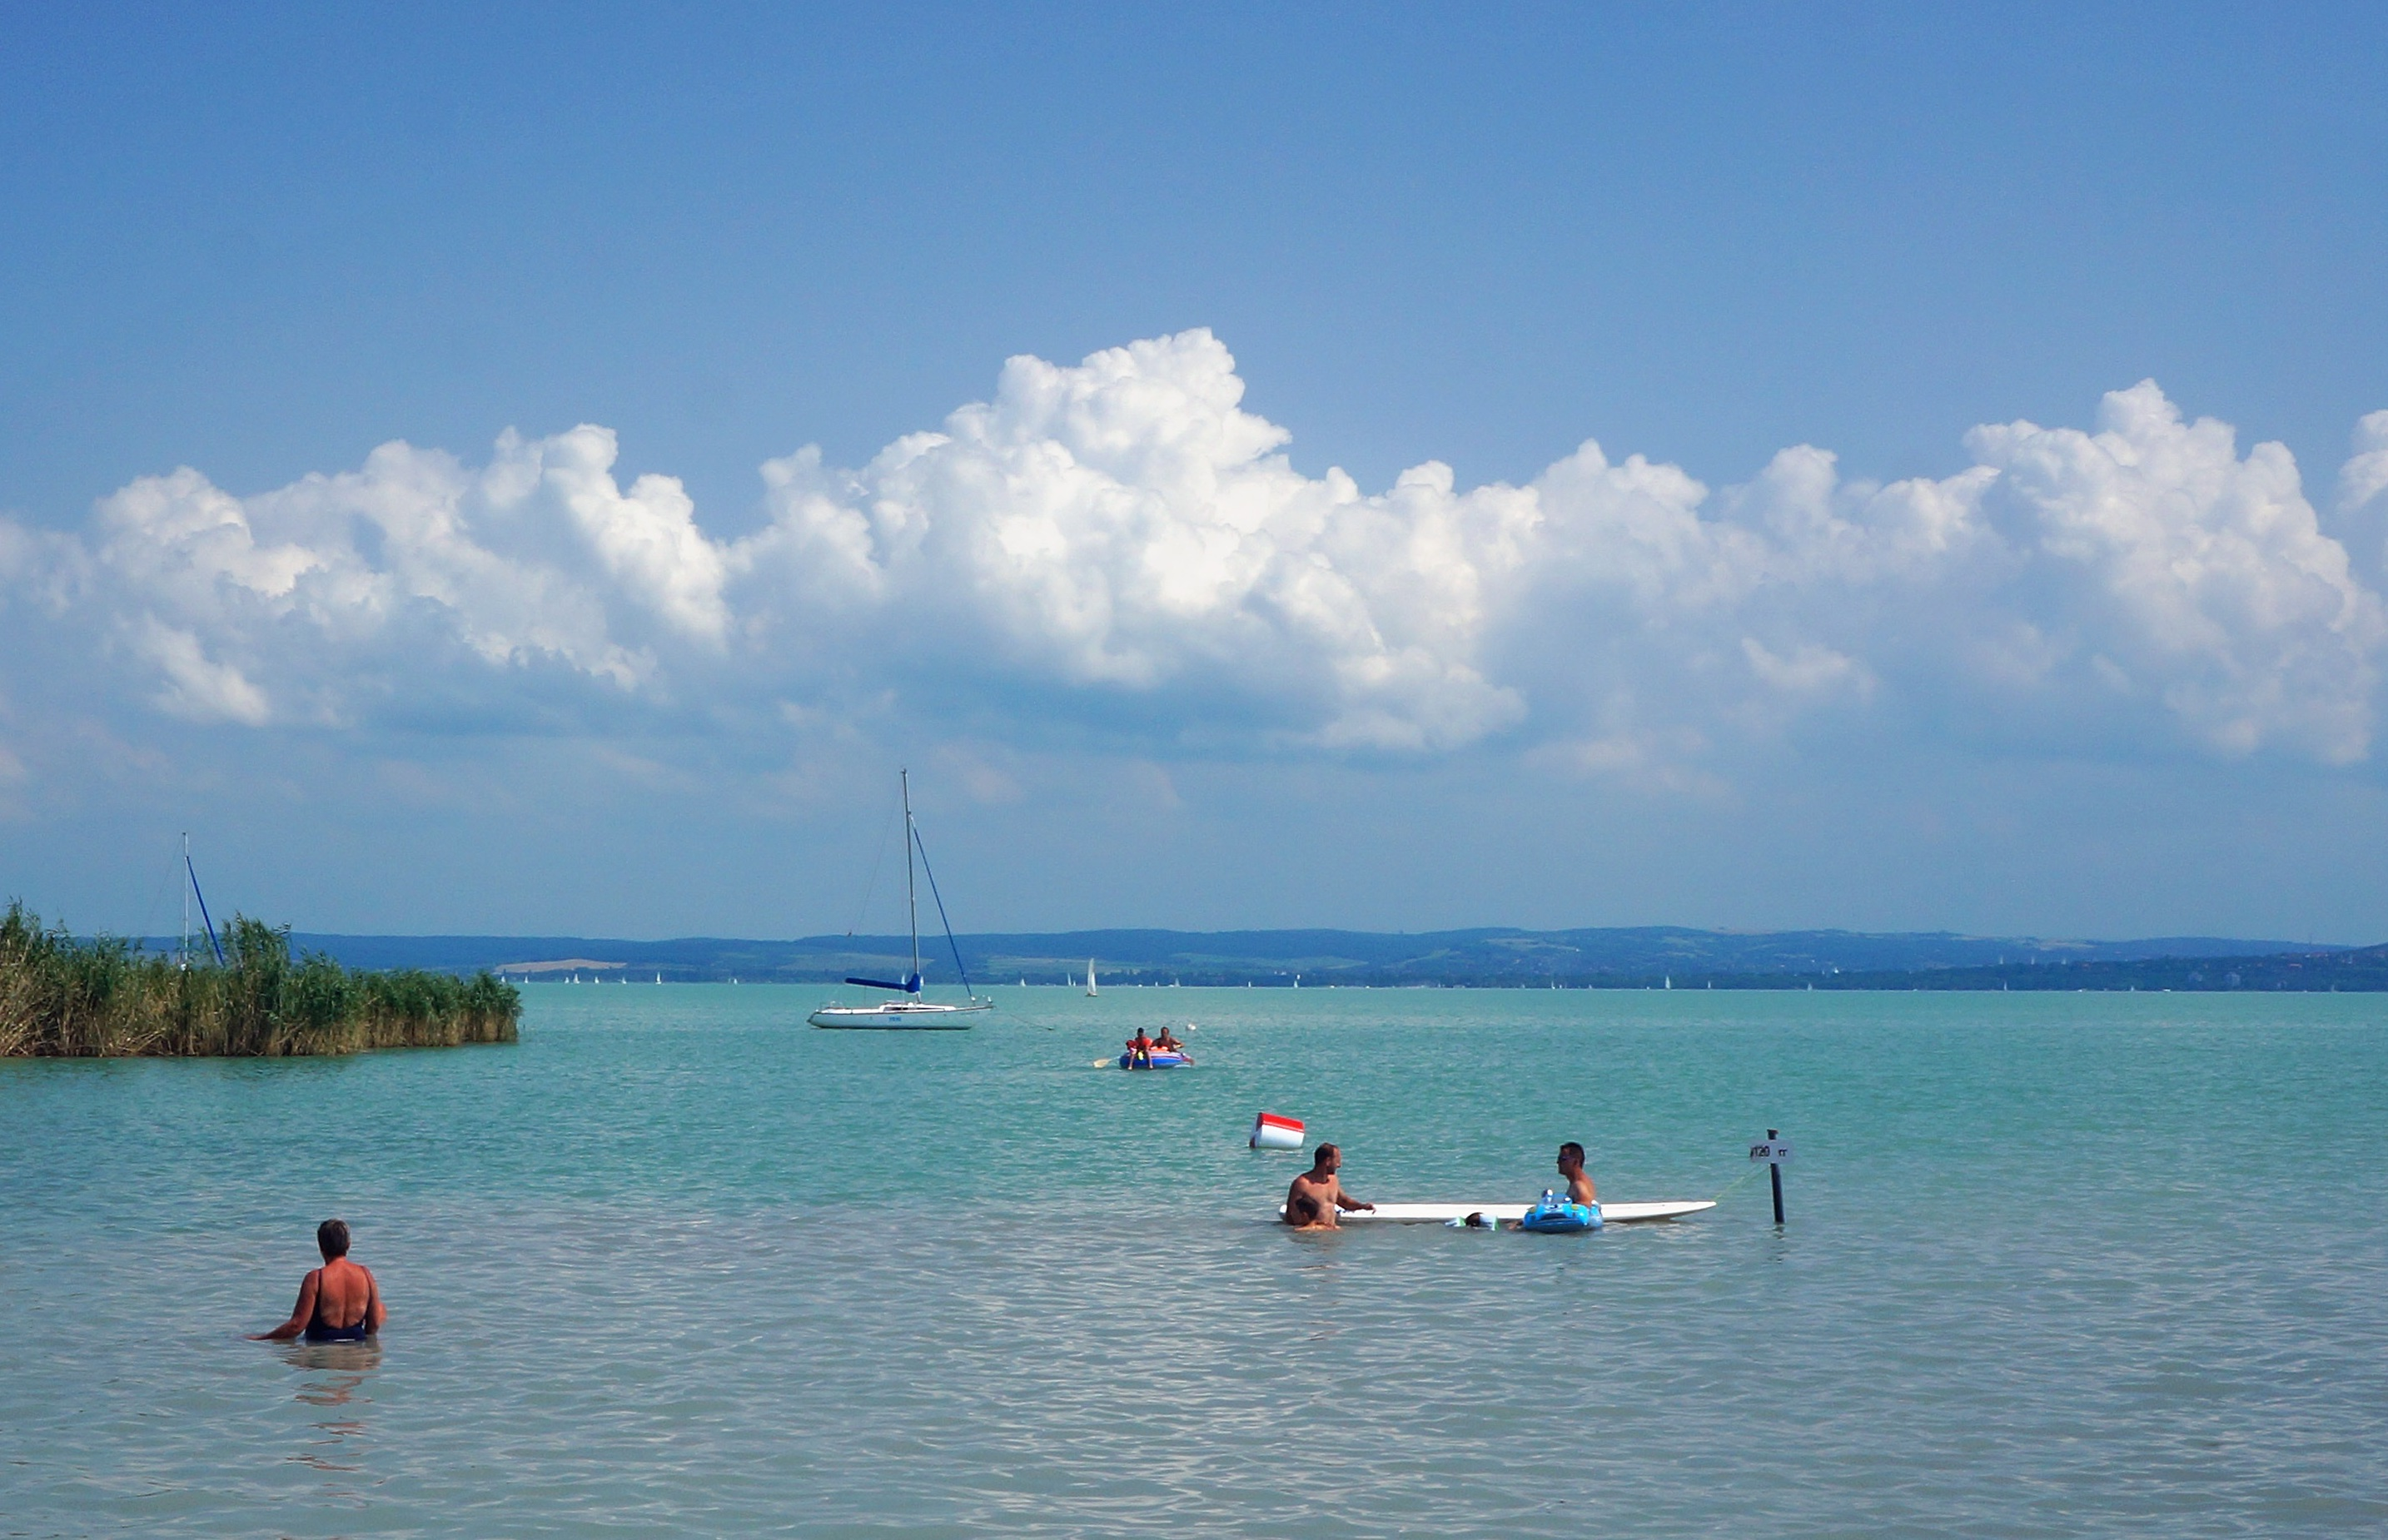 beach-sea-boat-lake-summer-paddle-542703-pxhere_com.jpg